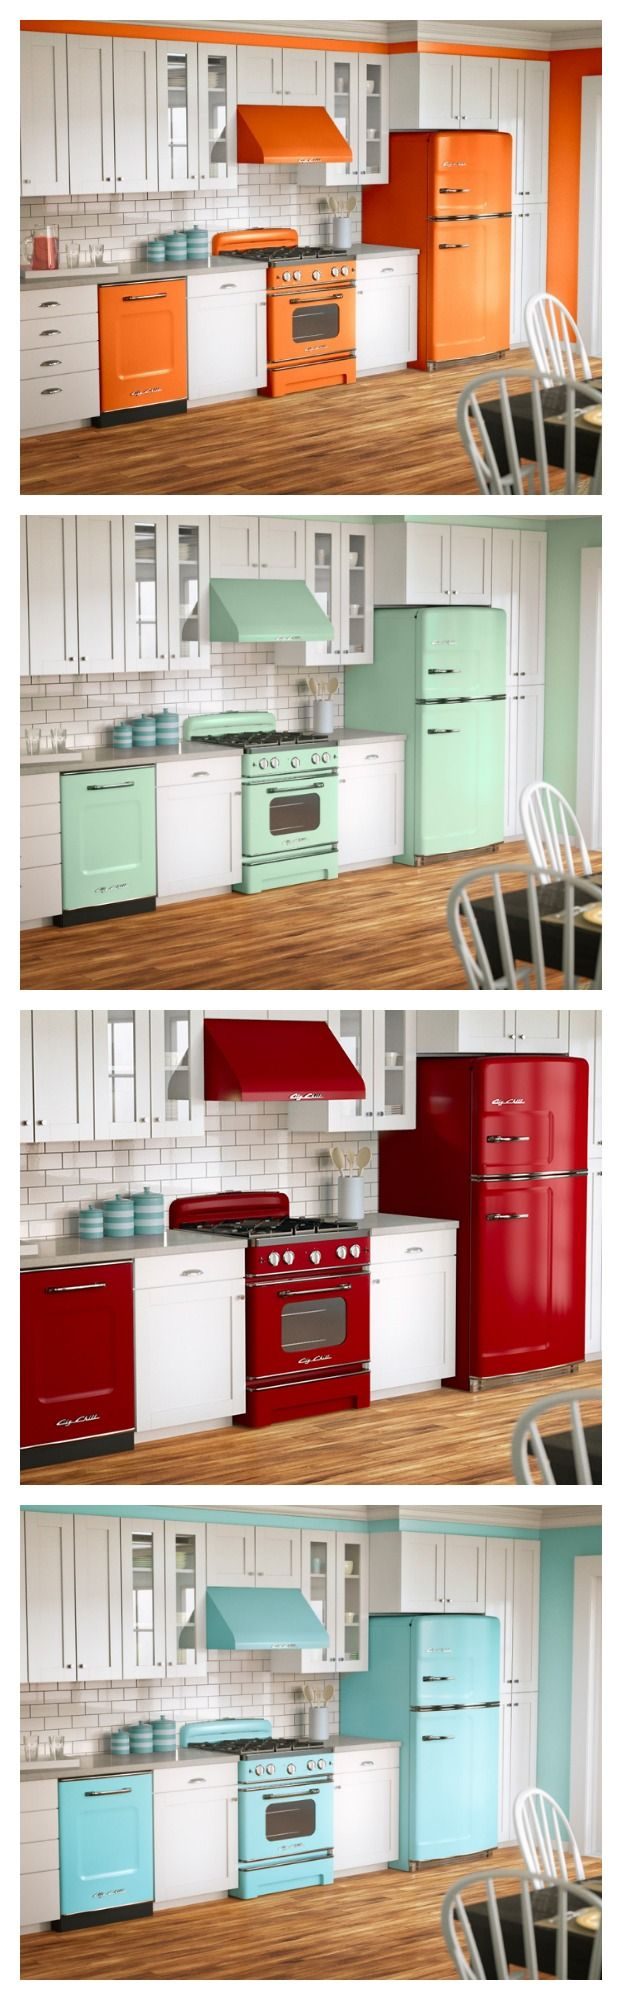 Uncategorized Painting Kitchen Appliances best 25 painting appliances ideas on pinterest the retro kitchen appliance product line